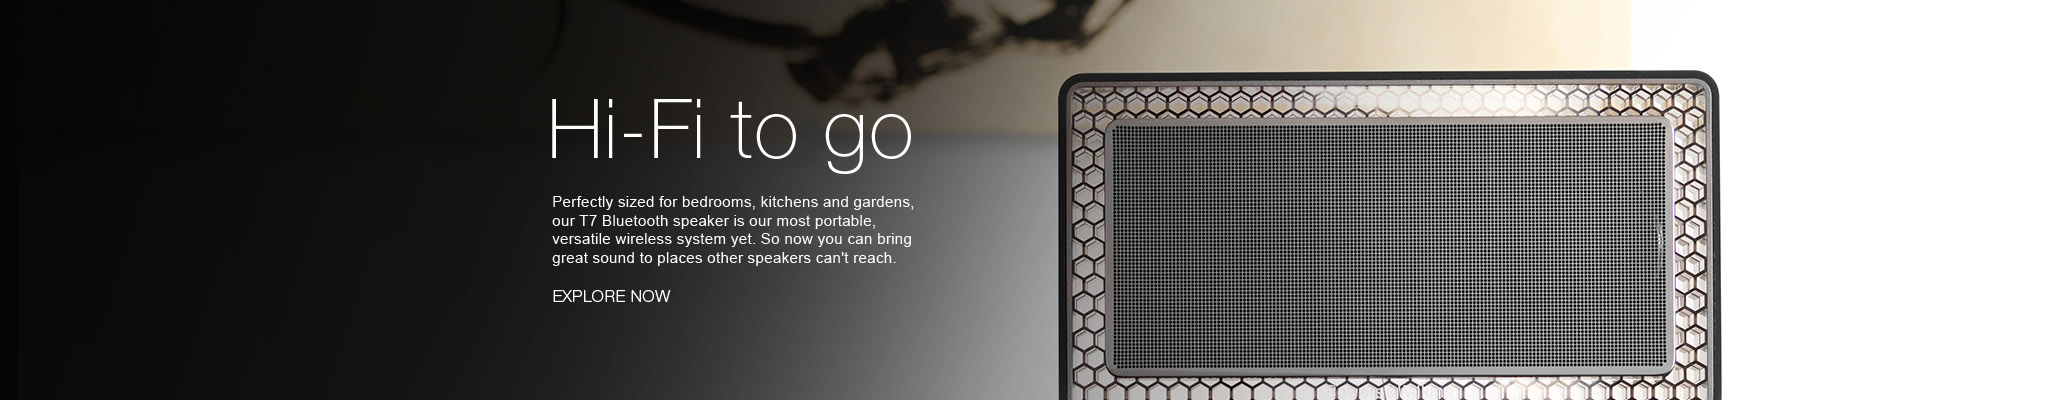 Bowers & Wilkins Bluetooth Speaker T7 Homepage-Banner